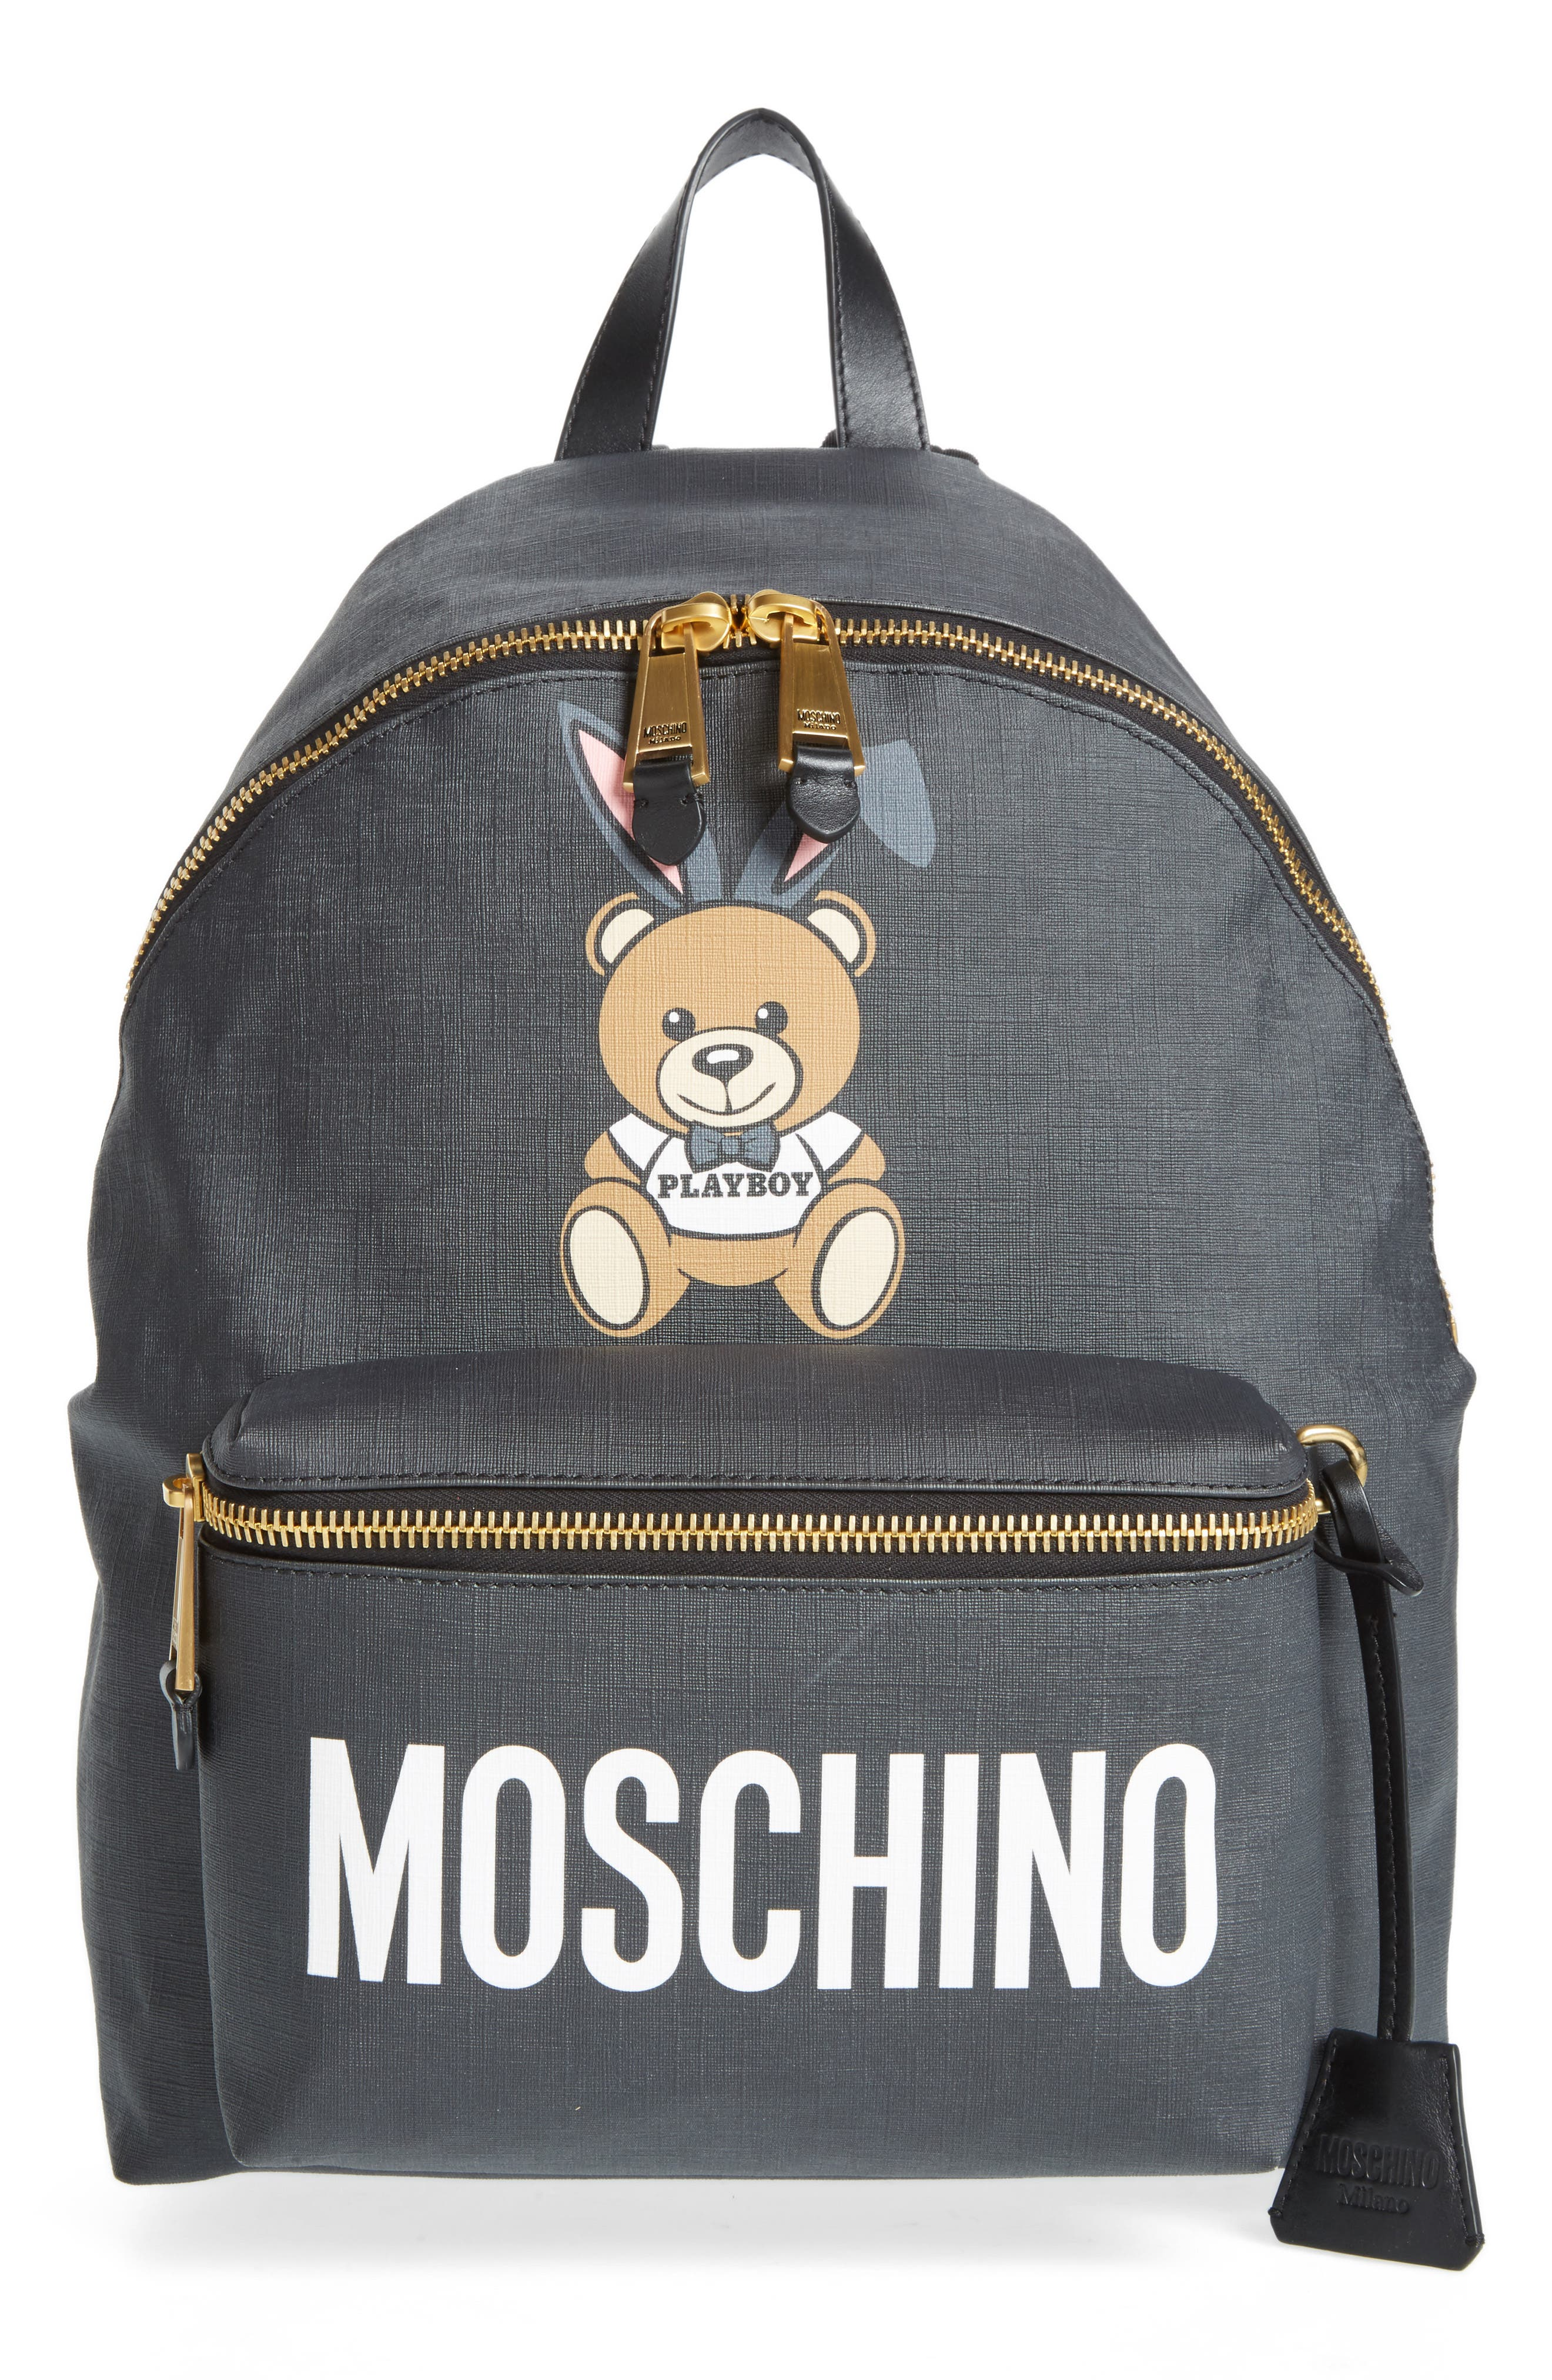 x Playboy Large Bunny Bear Woven Backpack,                         Main,                         color, Black